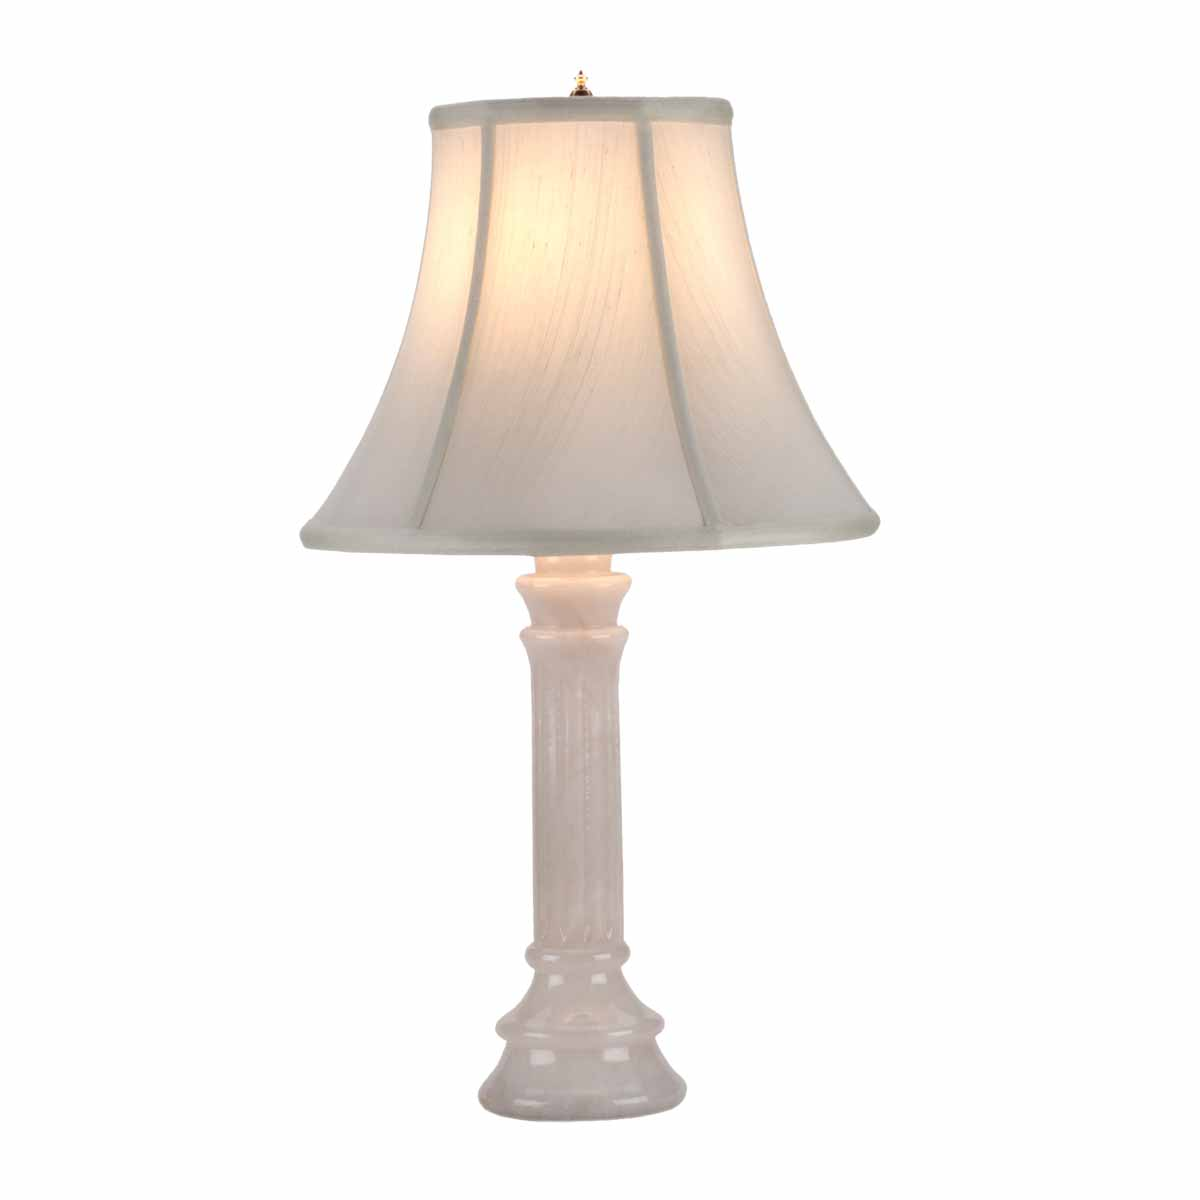 Beige shade white alabaster table lamp of 22 inch height for 6 inch table lamp